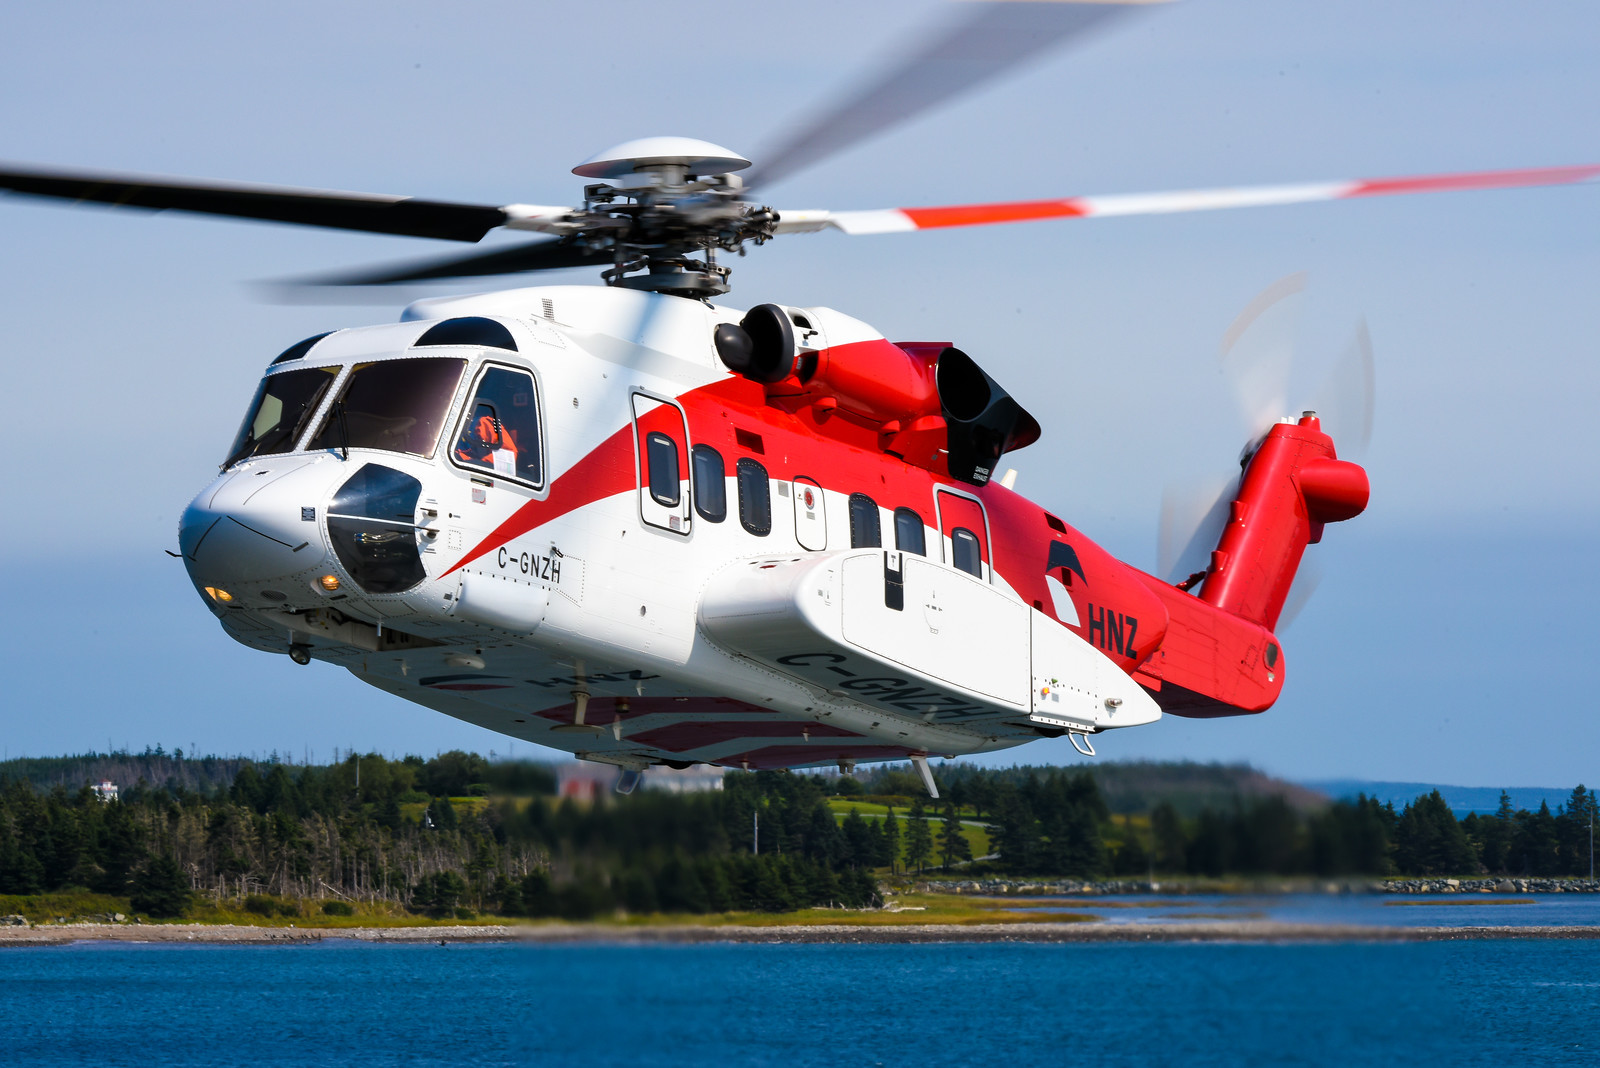 Lafayette, LA based PHI is acquiring Montreal, QC-based HNZ's offshore helicopter business that it conducts in New Zealand, Australia, the Philippines and Papua New Guinea. North American offshore operations will continue under HNZ. Previously, PHI and HNZ provided offshore helicopter services under a joint venture where PHI supplied it with Sikorsky S-92 helicopters. Mike Reyno Photo